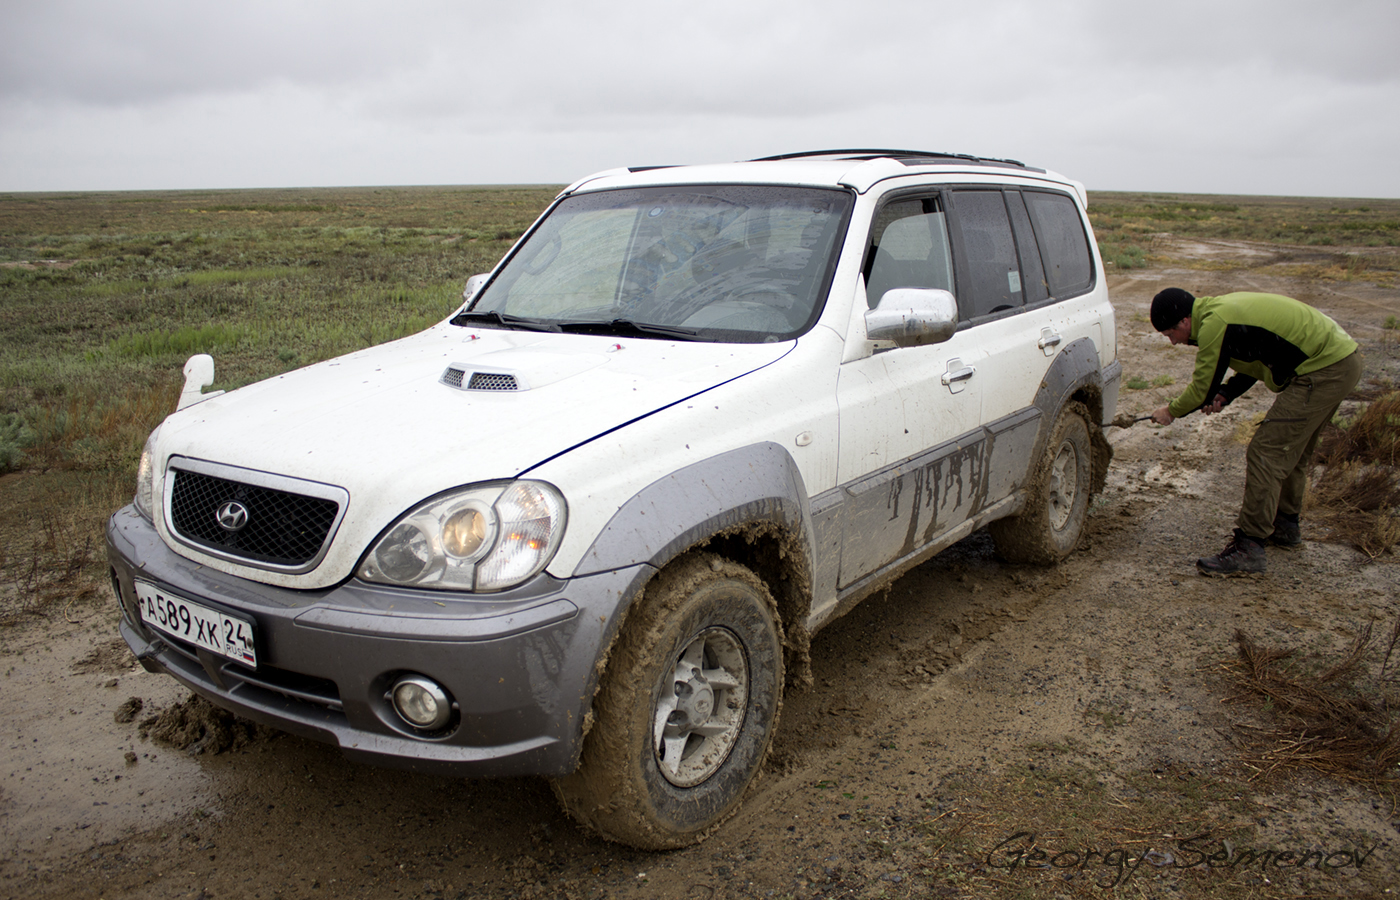 expedition-to-kazakhstan-2014-fighting-the-dirt_25197090011_o.jpg